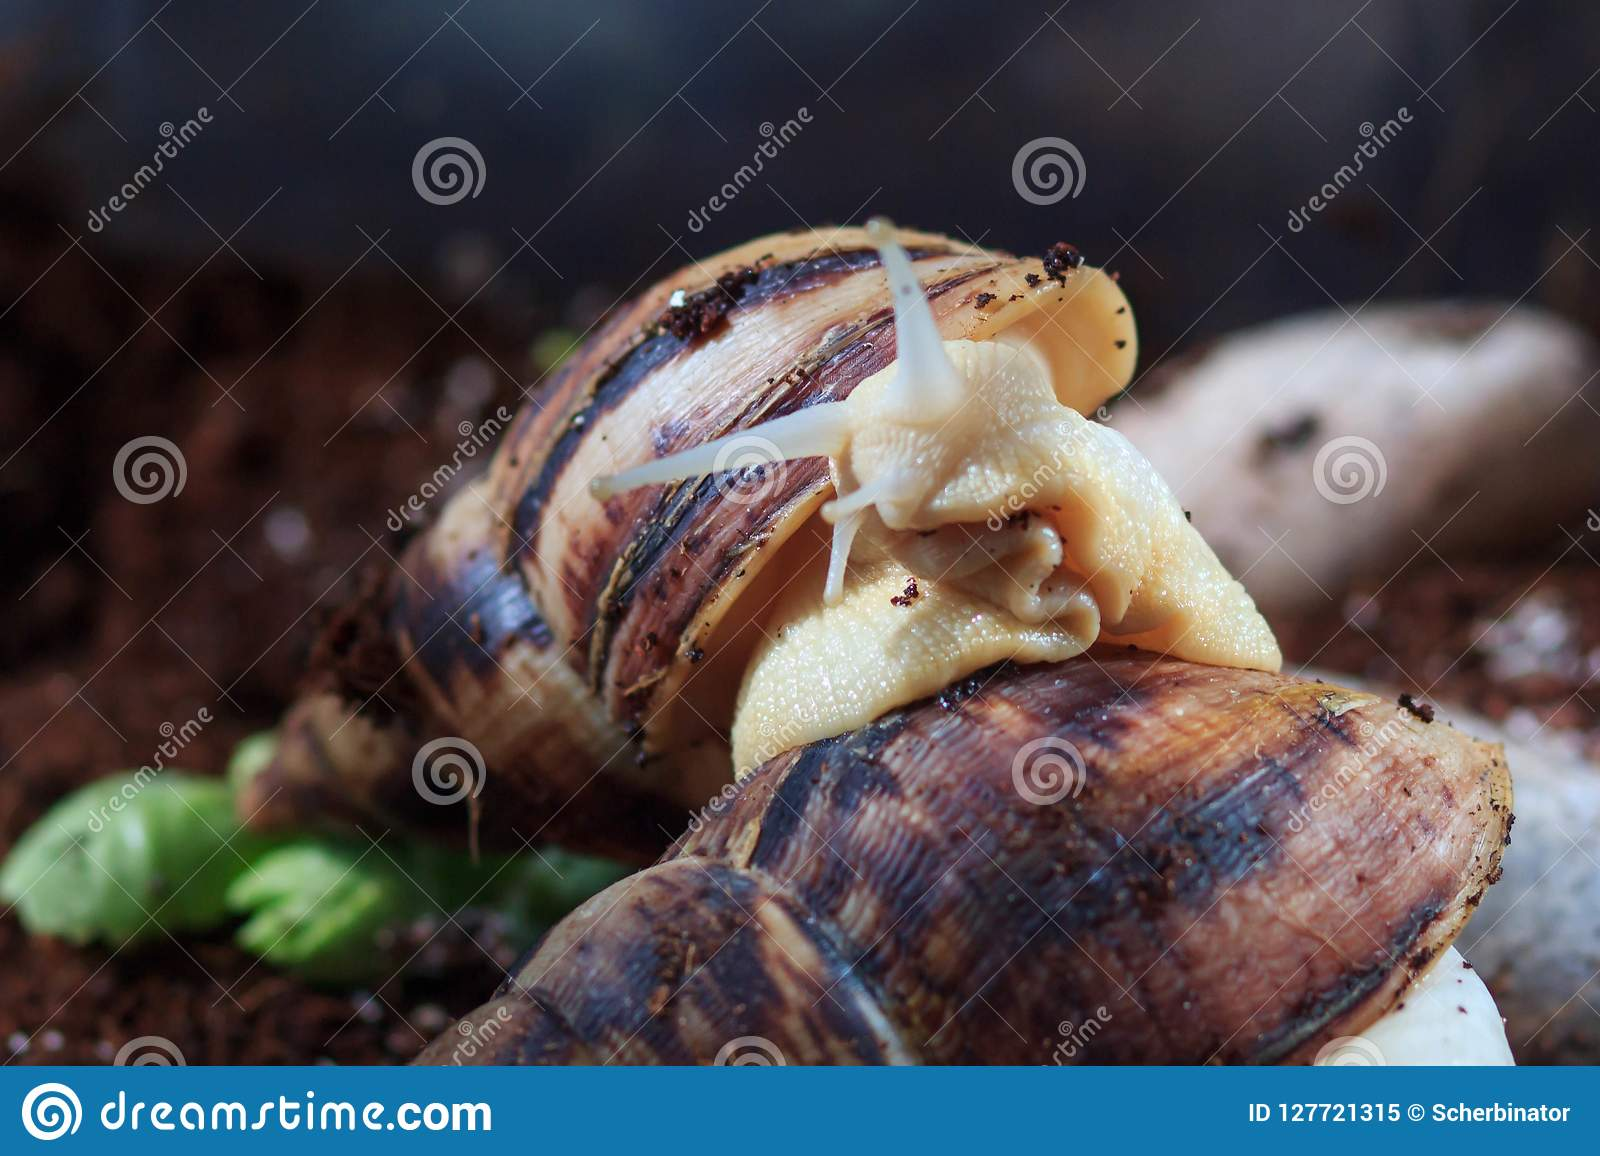 Garden snail Helix aspersa with small snail, the big snail is taking care about the little one